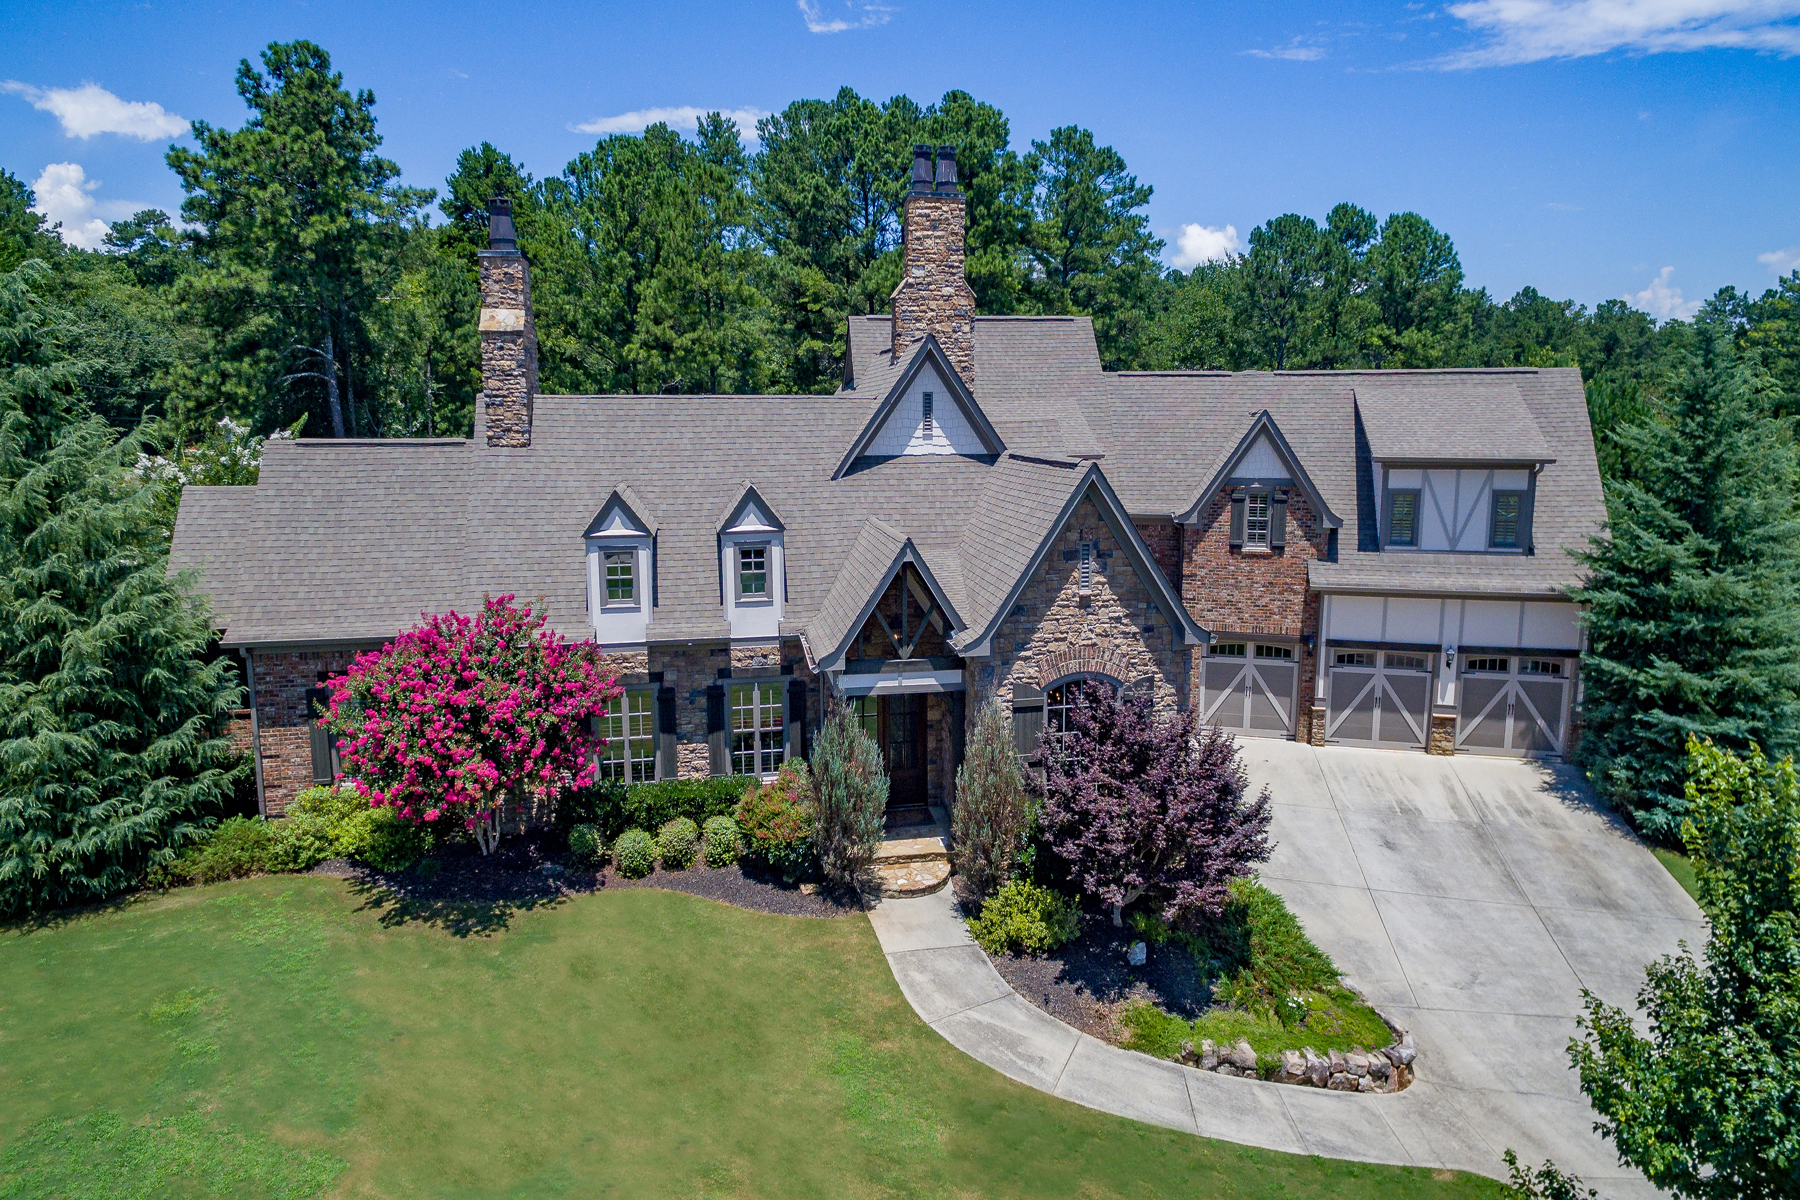 Moradia para Venda às Captivating French Country Estate on 1.2 +/- Acres with Walk-Out Backyard 4040 Southdown Lane NW Kennesaw, Geórgia, 30152 Estados Unidos